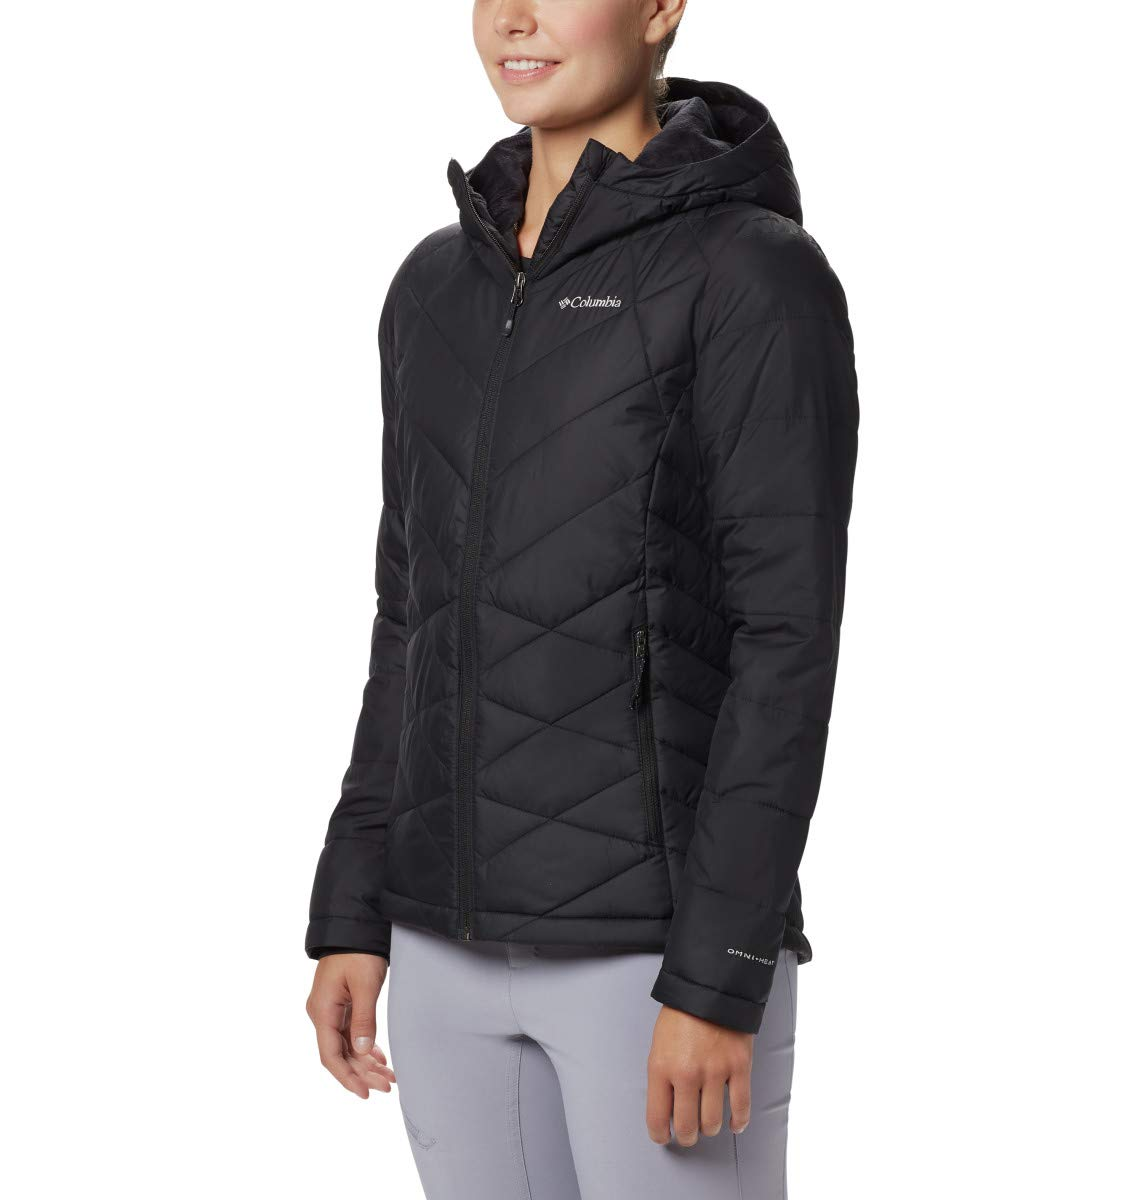 Columbia Women's Heavenly Hooded Jacket, Insulated, Black, Medium by Columbia